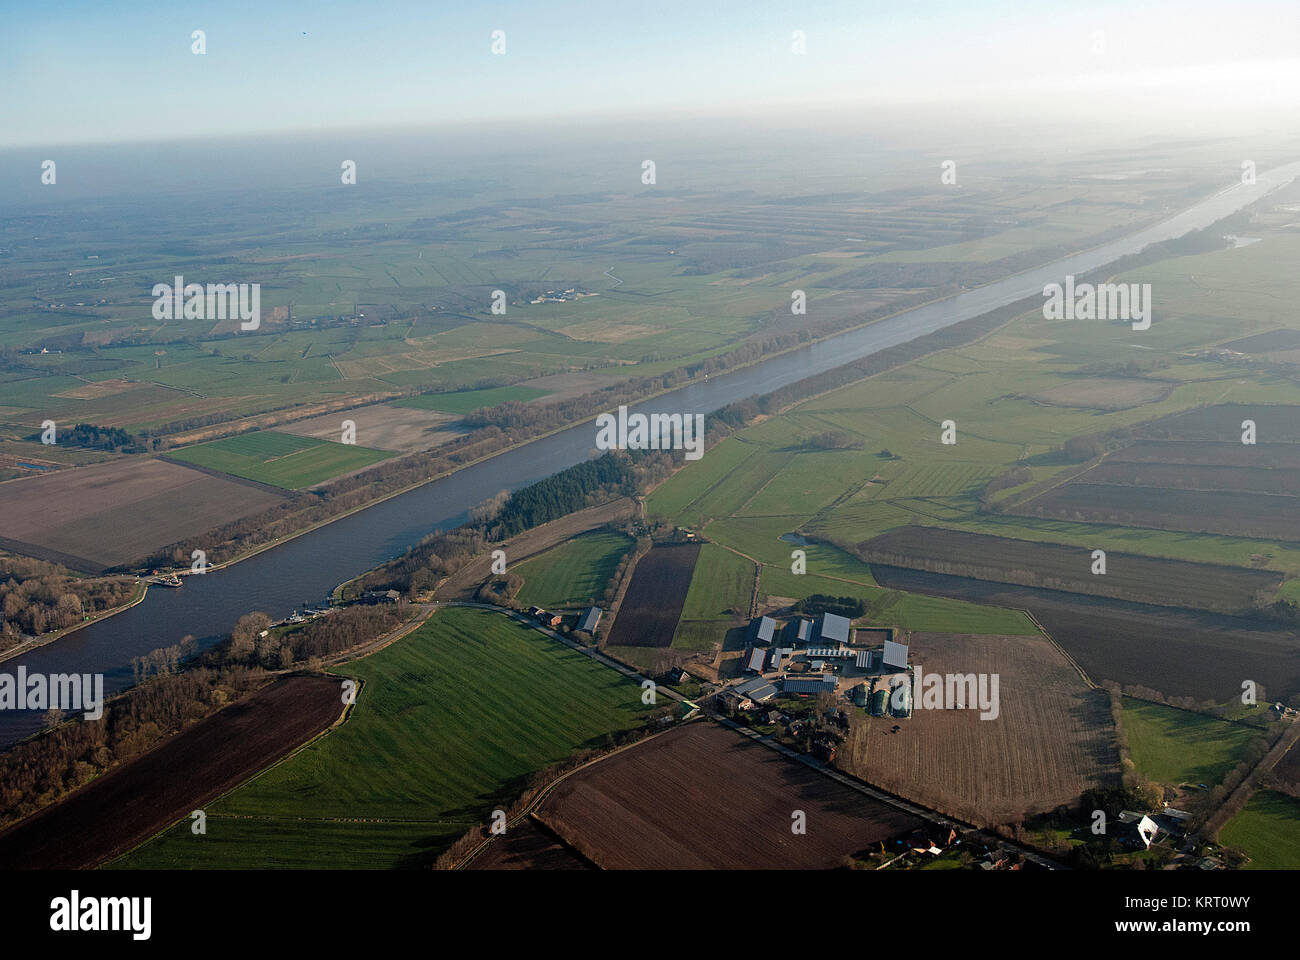 Nord-Ostsee-Kanal, Aerial view. - Stock Image